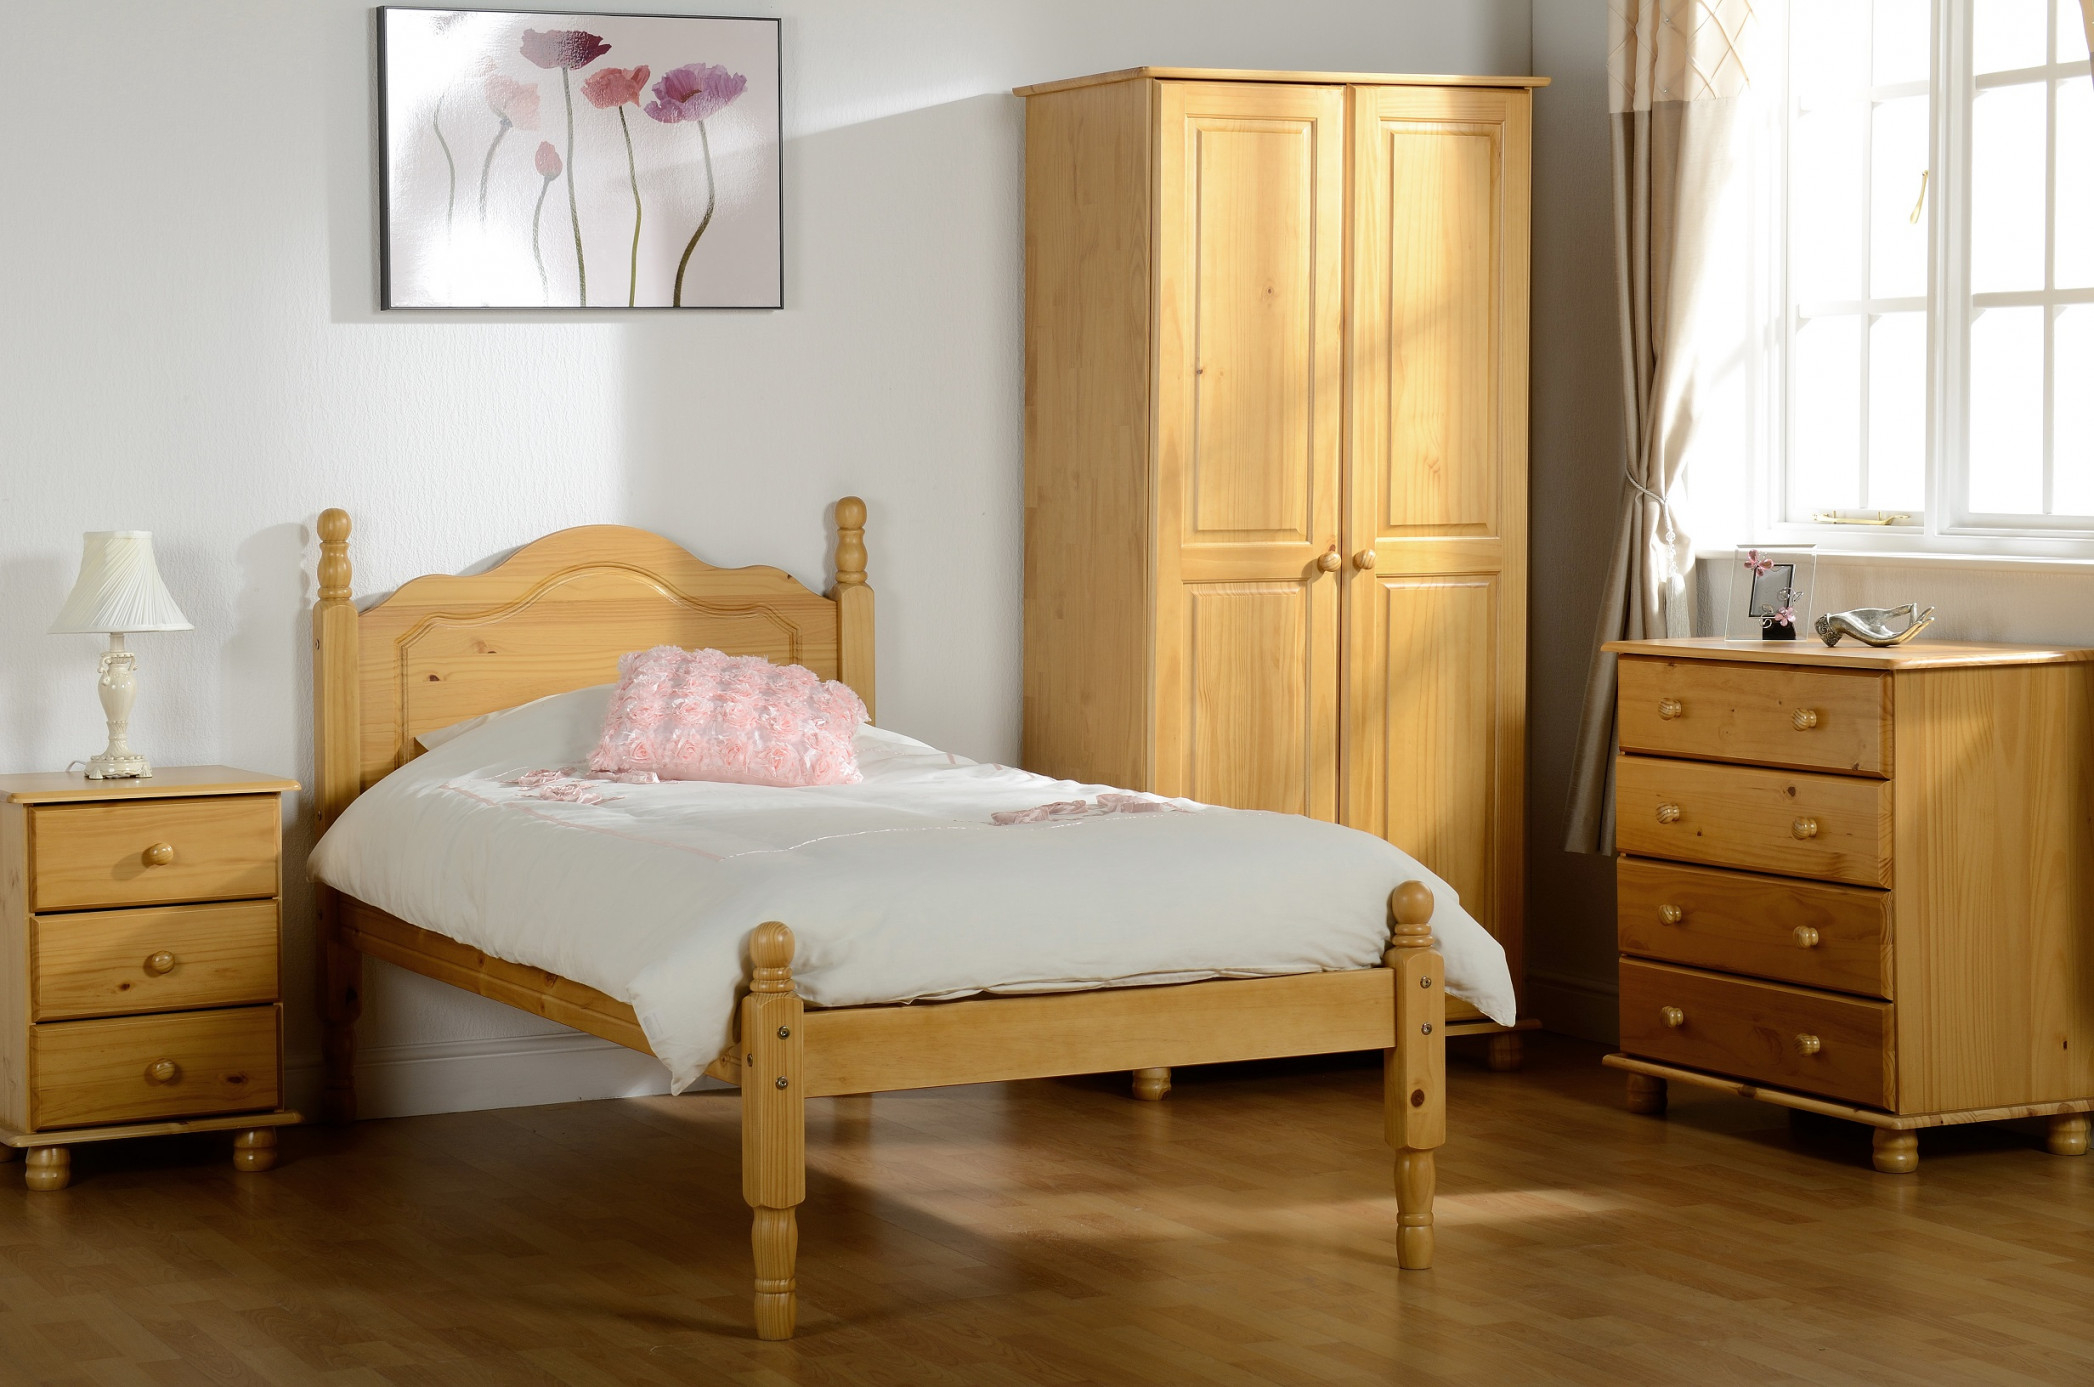 pine bedroom furniture set baby nursery: pine bedroom furniture pine bedroom furniture sets MGBESPE